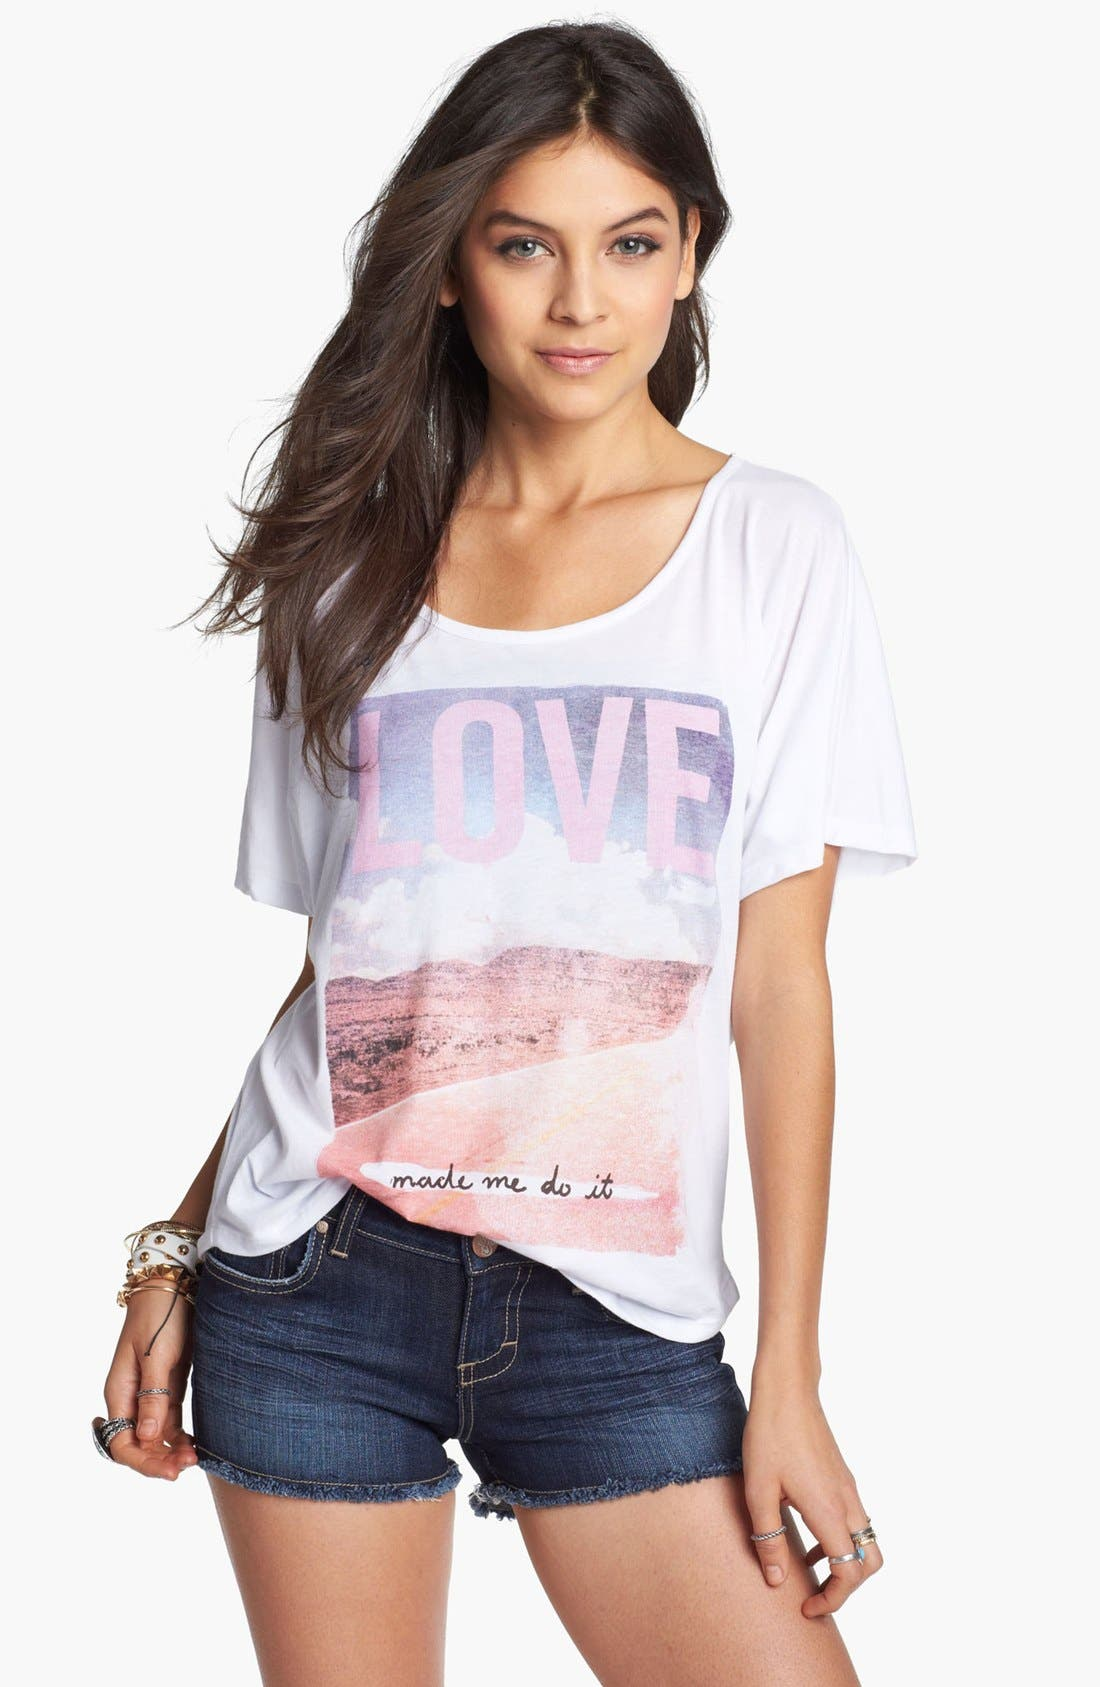 Main Image - Malibu Native 'Love Made Me Do It' Tee (Juniors)